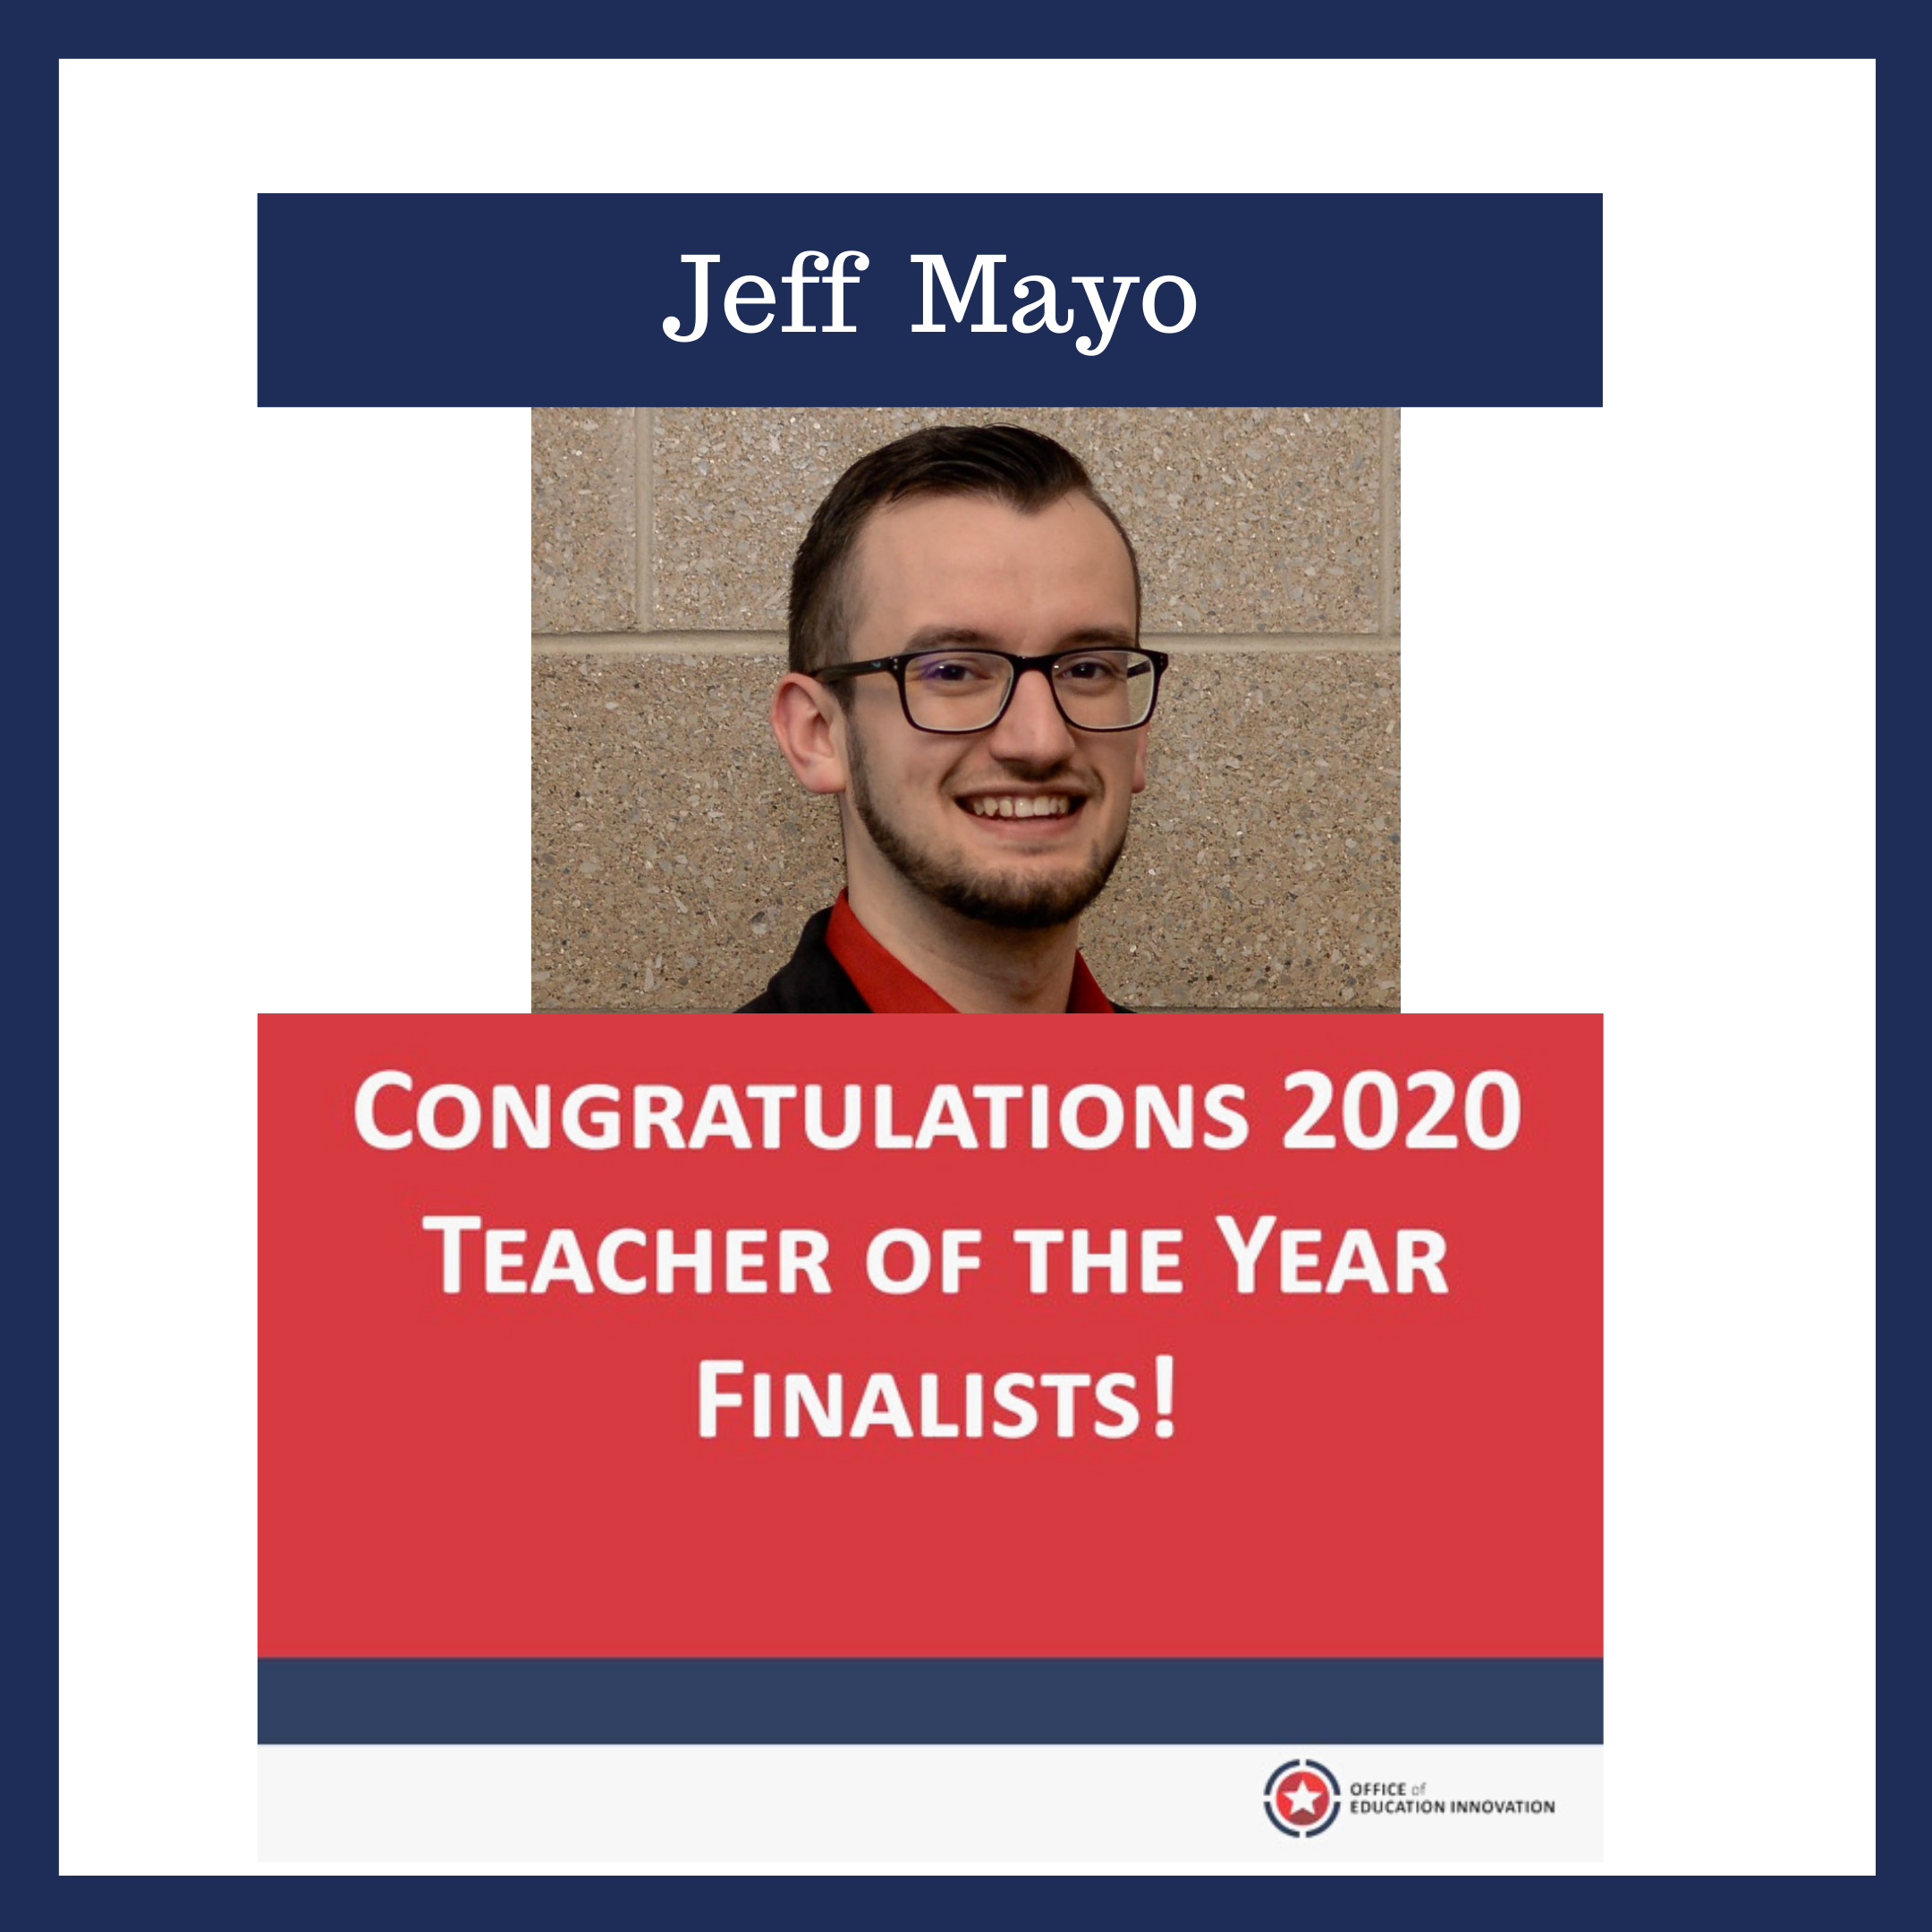 Jeff Mayo: 'This is me giving you permission to explore your students' dreams'